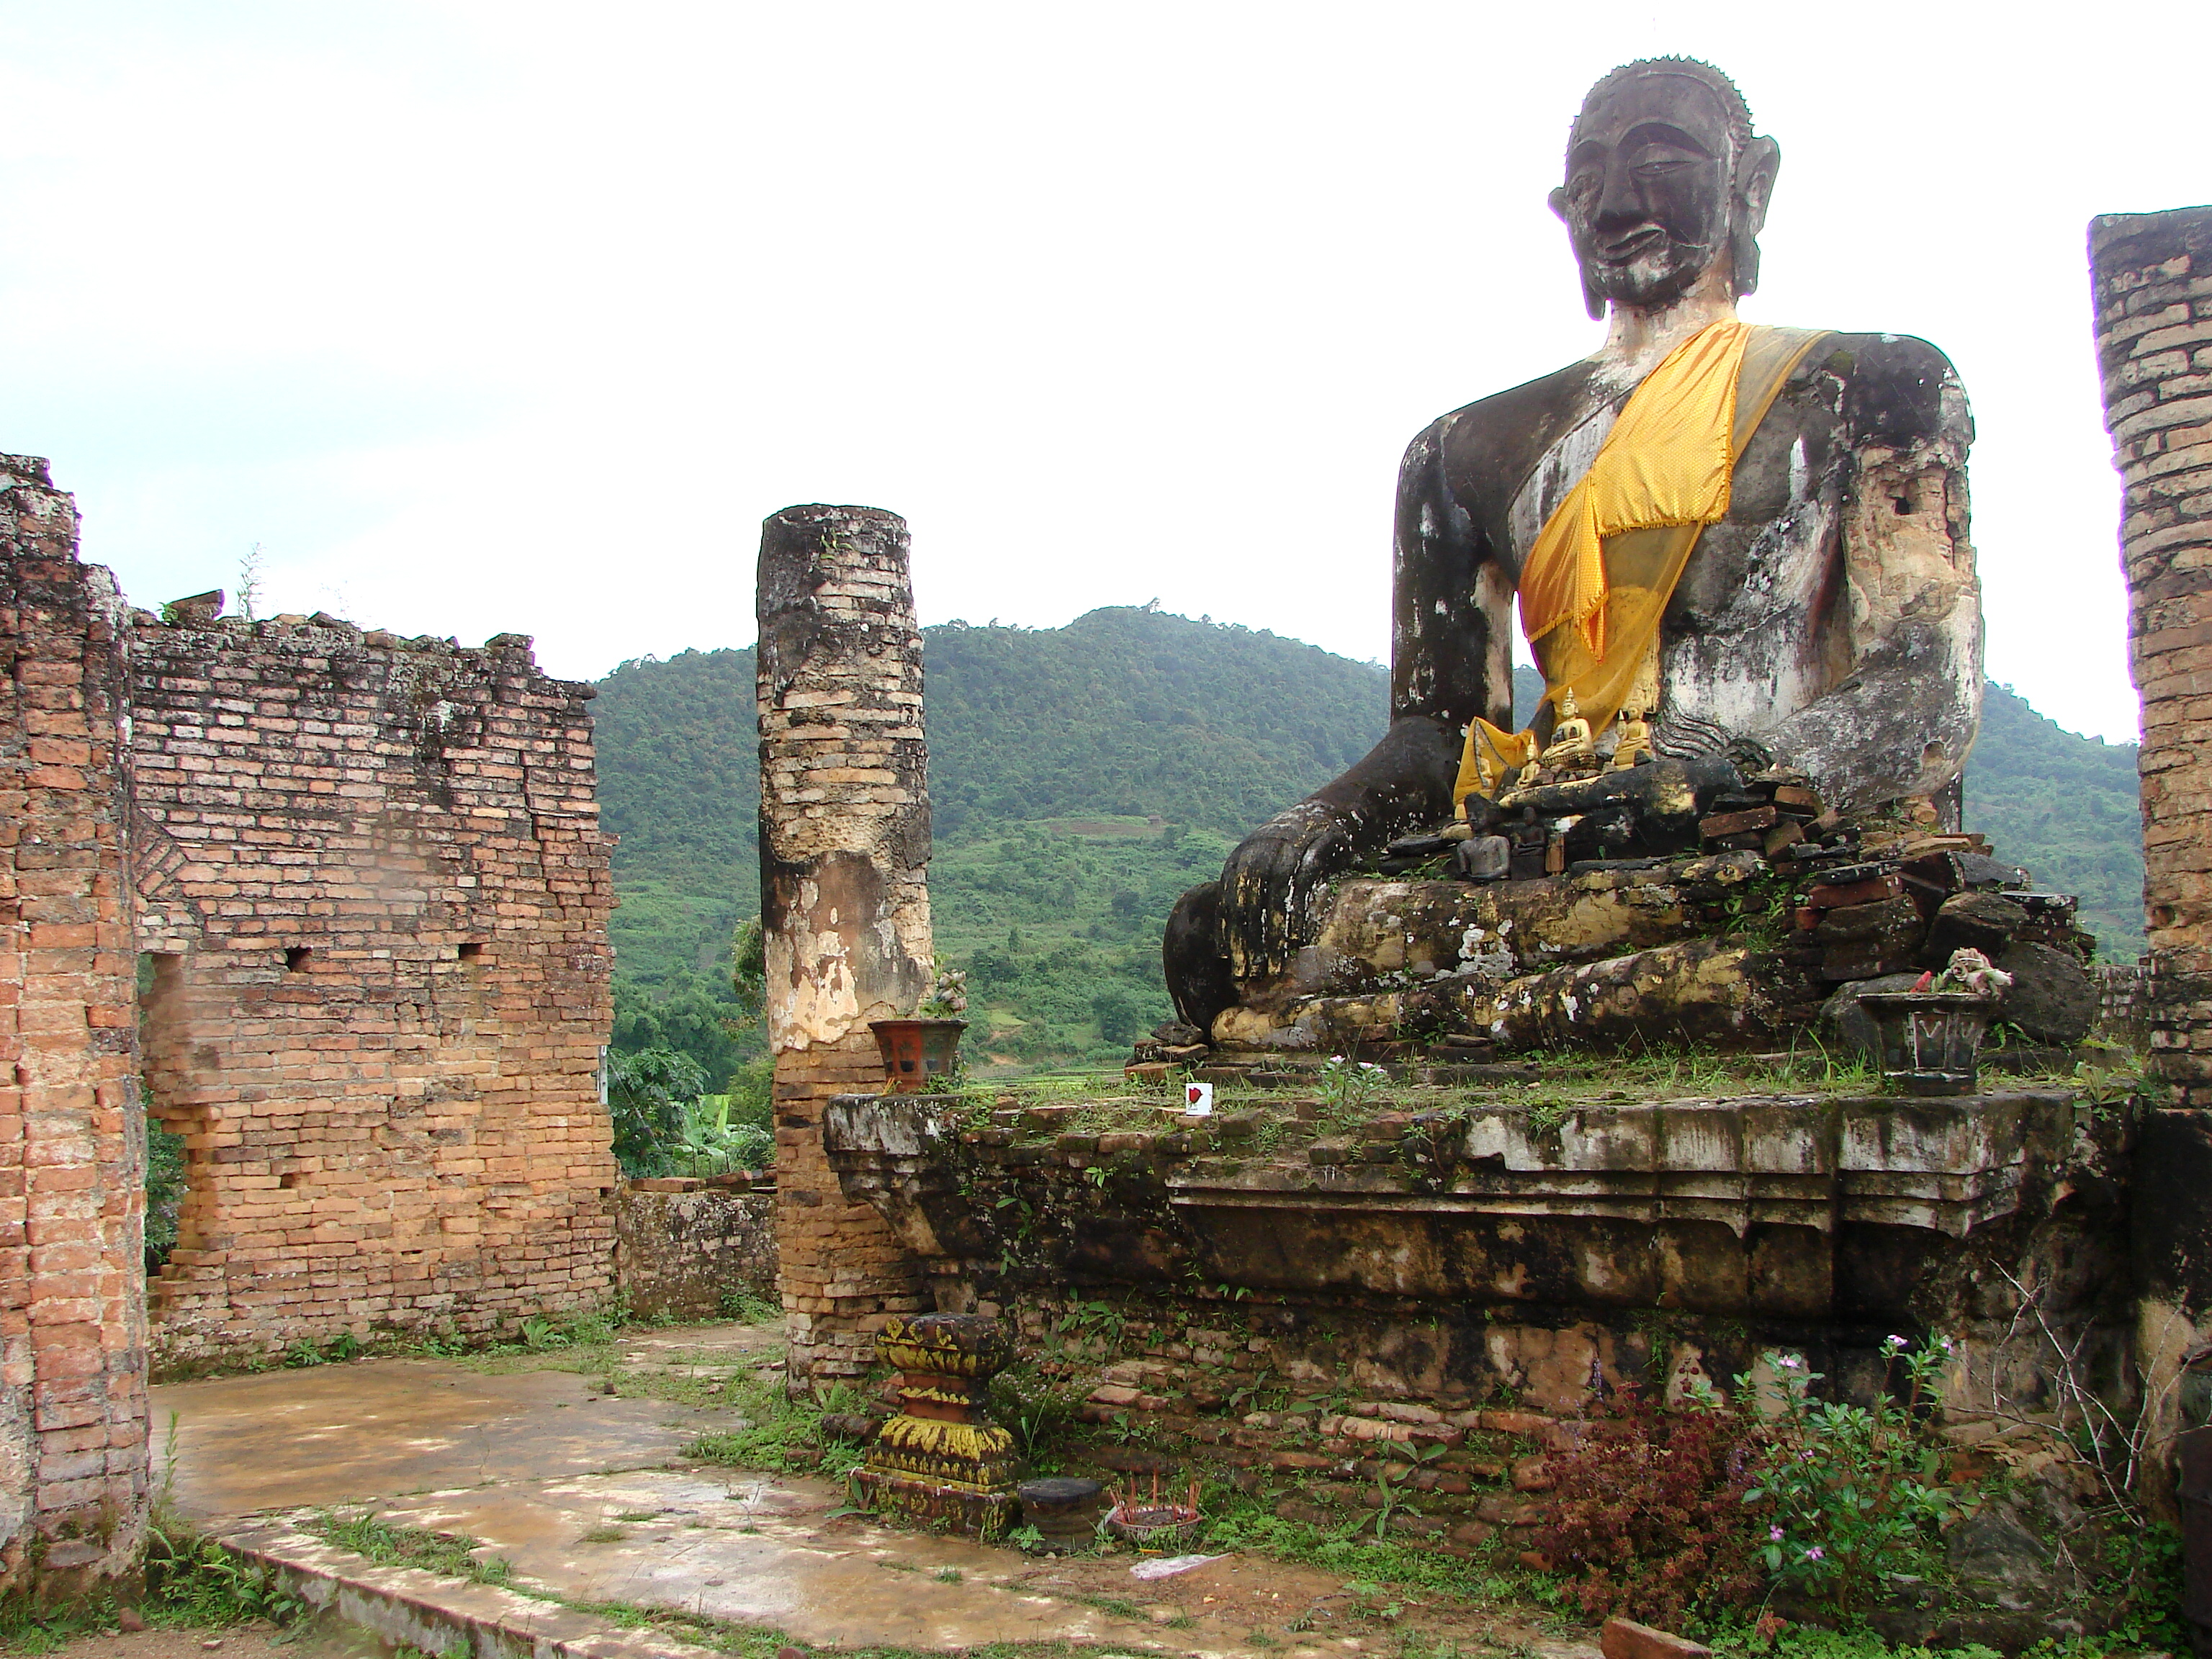 Ruins of Muang Khoun, former capital of Xieng Khuang province, destroyed by US bombs in the late 1960s. Photo taken by Adam Jones on July 14, 2009.